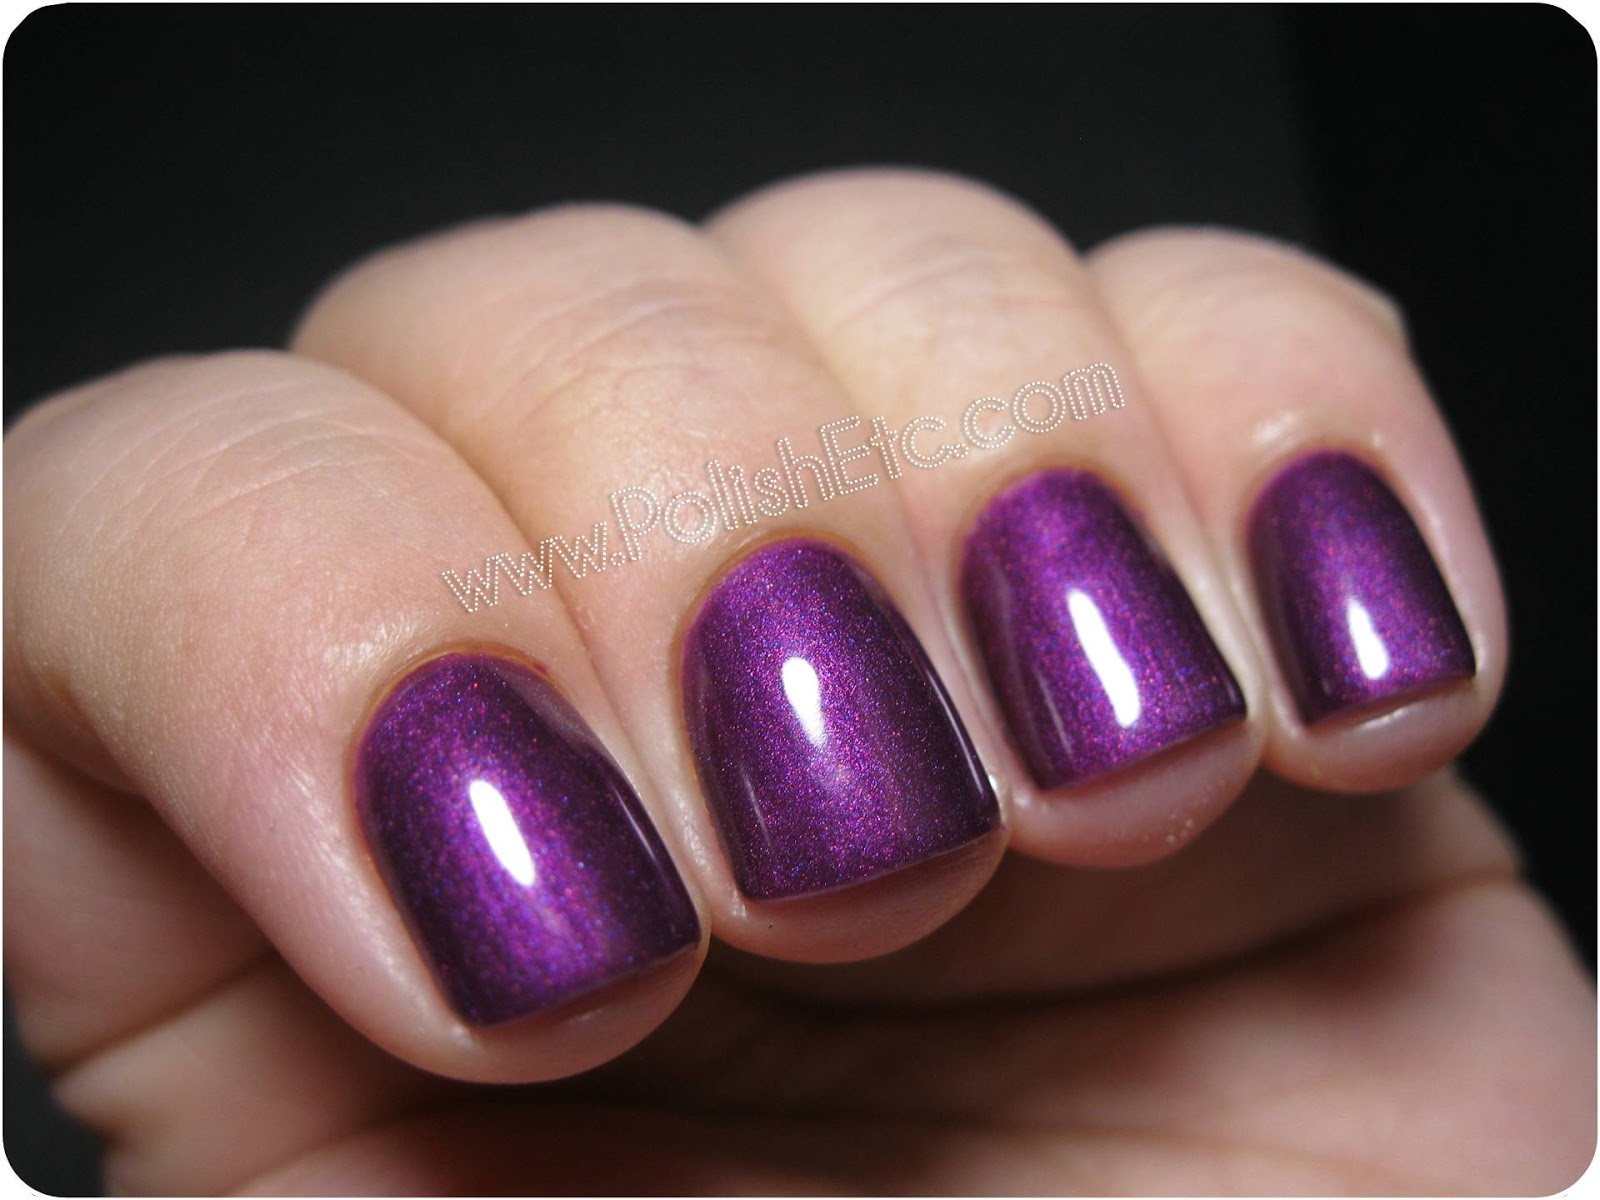 Opi Suzi And The 7 Dusseldorfs Swatch And Gelcolor Comparison Polish Etc